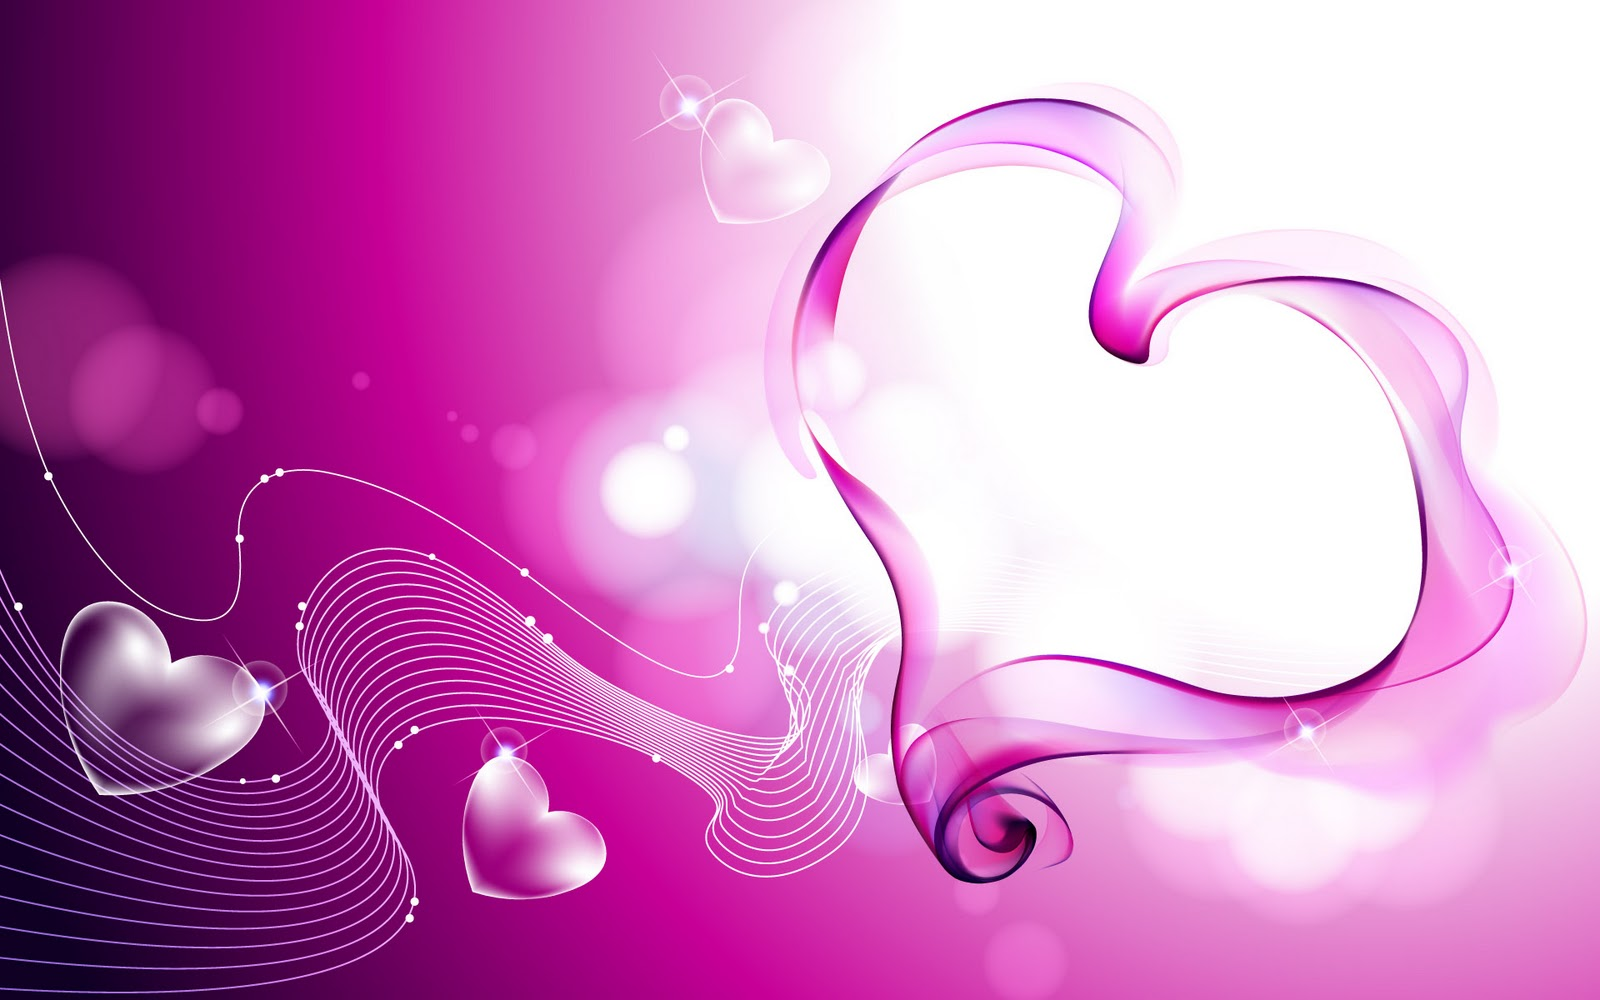 valentines day backgrounds wallpapers - photo #45